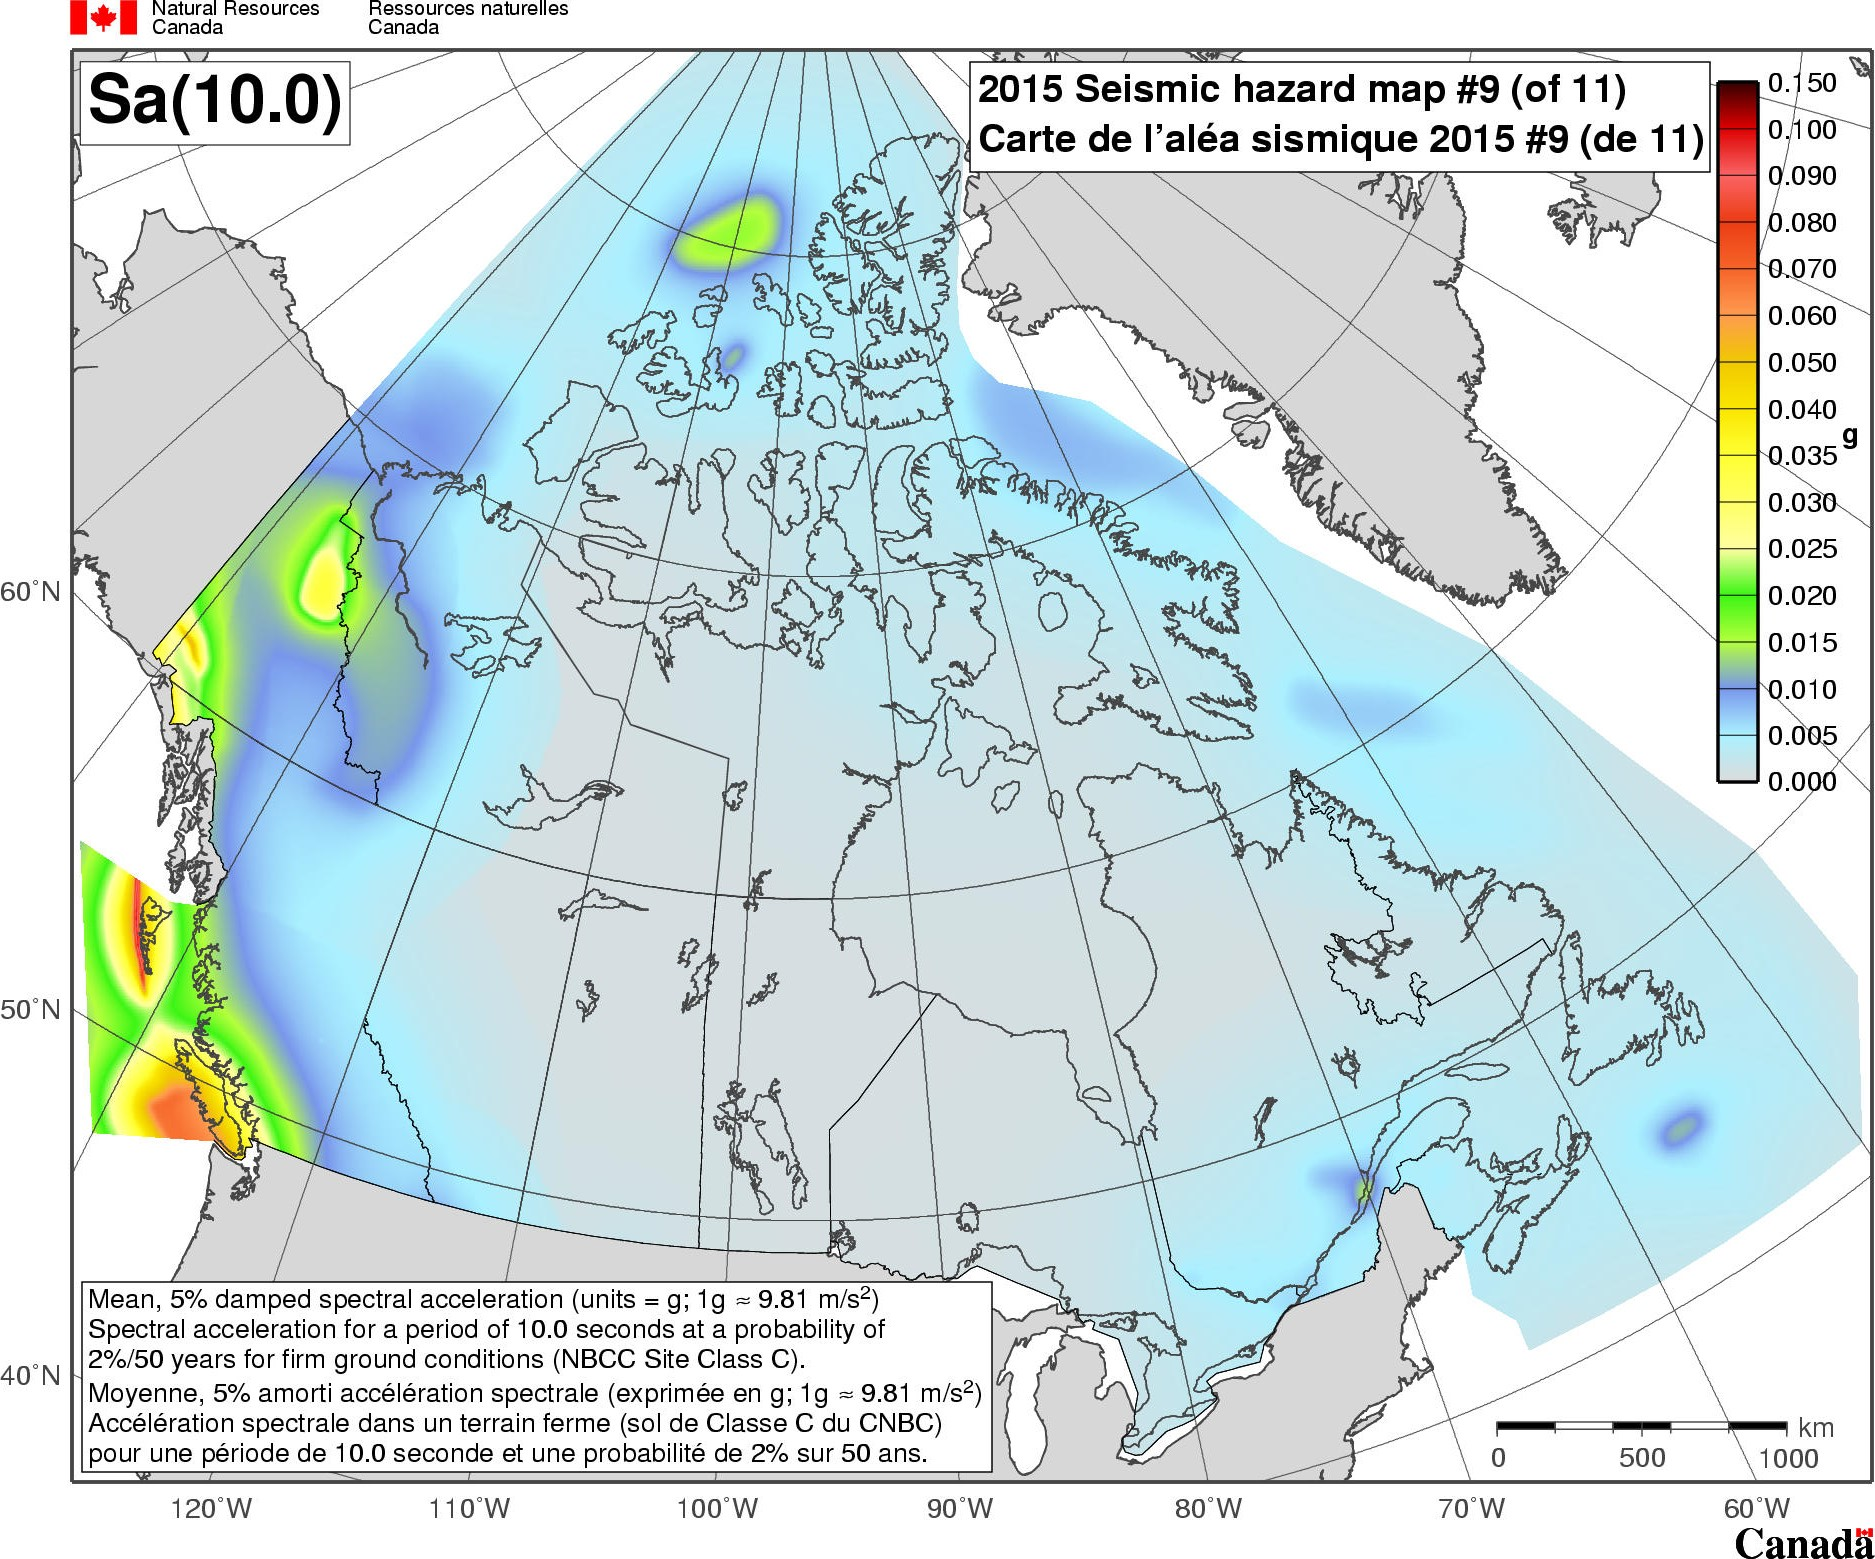 2015 National Building Code of Canada seismic hazard maps on seismic activity map, costa rica time zones map, seismic analysis, seismic map colors, clay map, national seismic map, paleogeographic map, mitigation of seismic motion, seismic risk map, plate tectonics map, seismic loading, seismograph map, ibc seismic map, contour lines on a map, seismic risk,